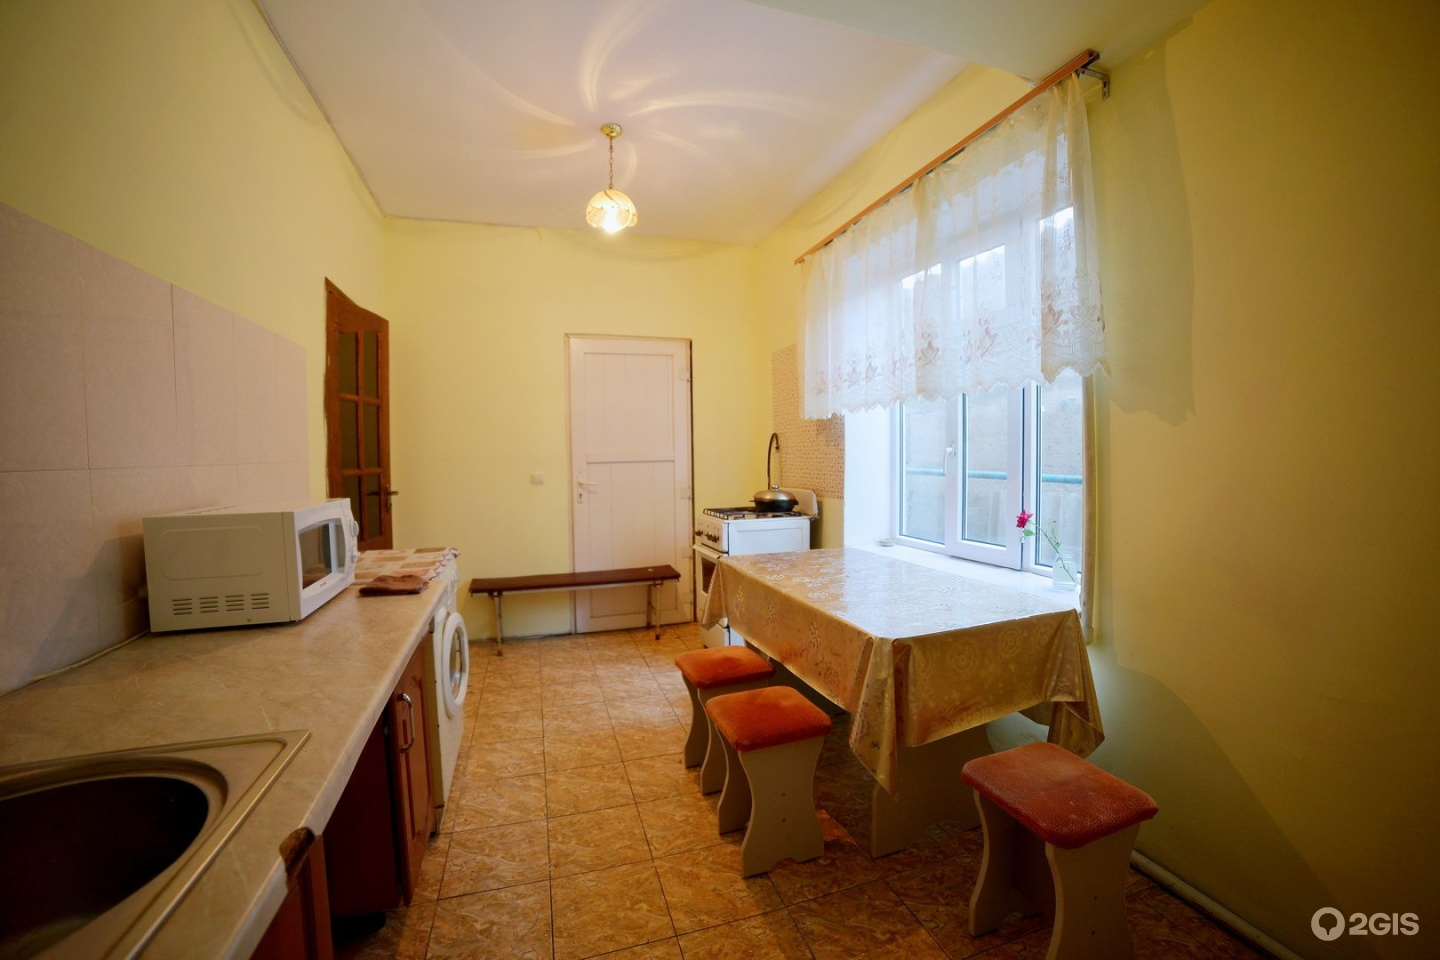 hostel life doc Book casa de arena, huacachina on tripadvisor: casa de arena hostel, huacachina, peru the best experience in your life by far.